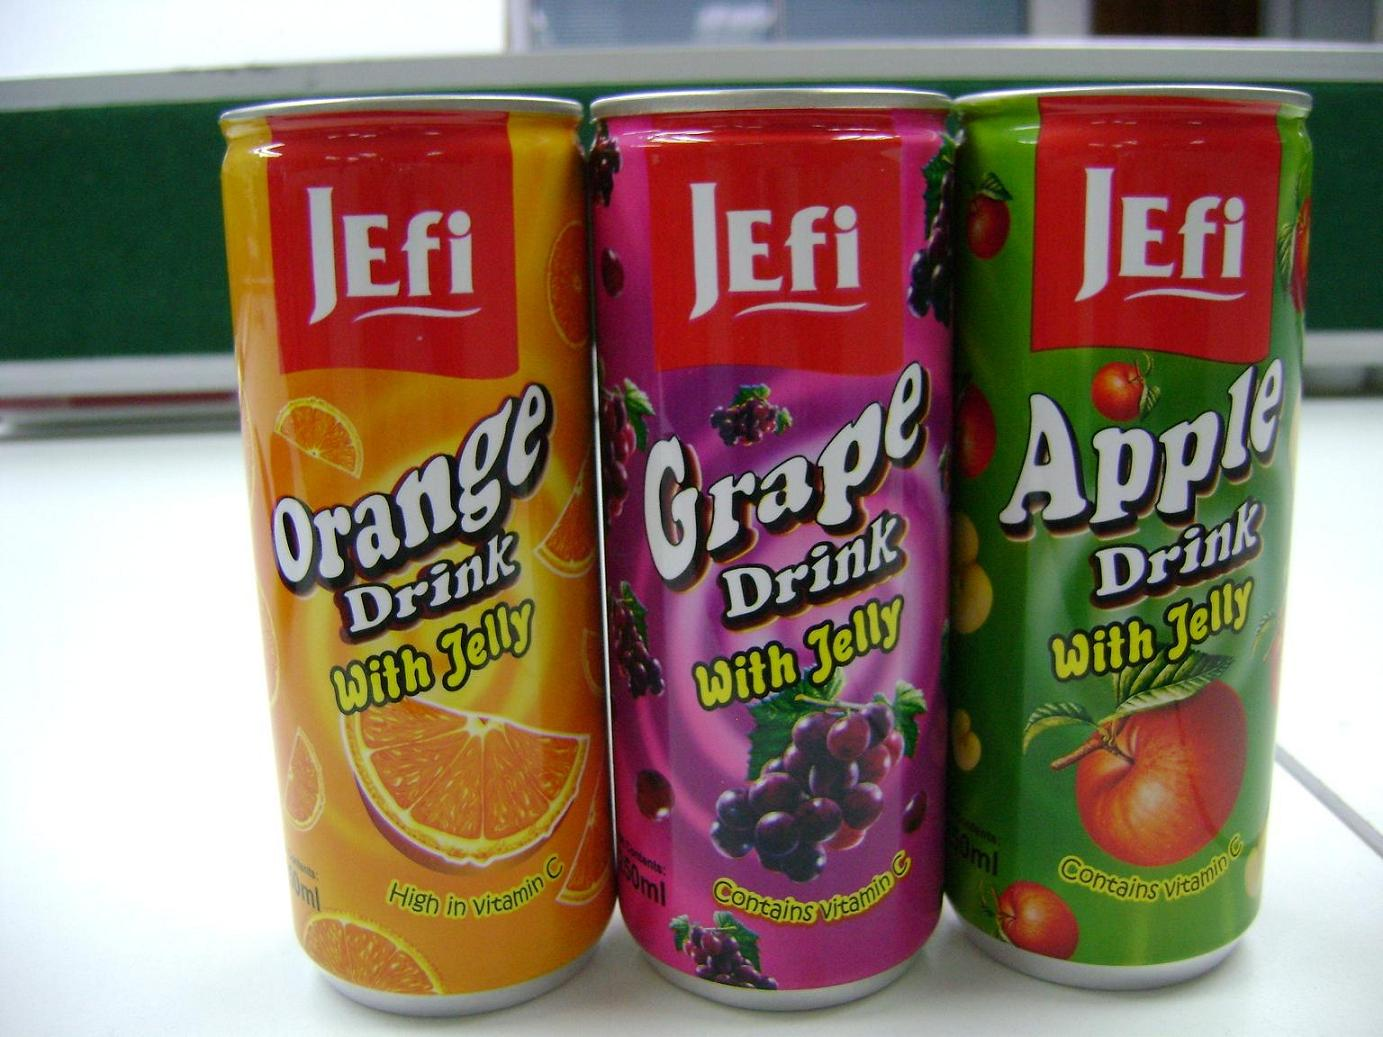 Jefi fruit drinks with jelly